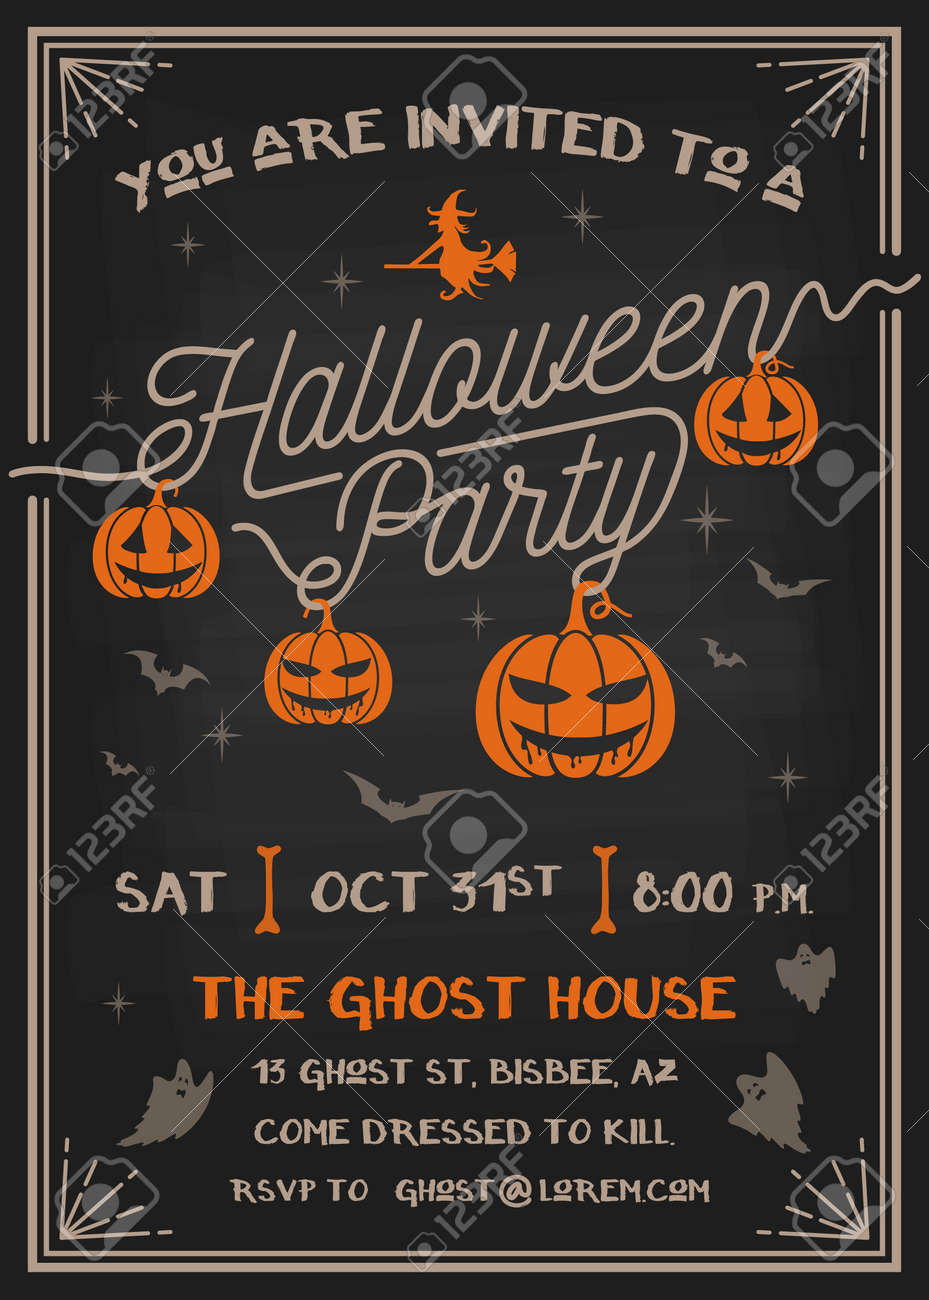 Typography Halloween Party Invitation Card With Scary Pumpkins